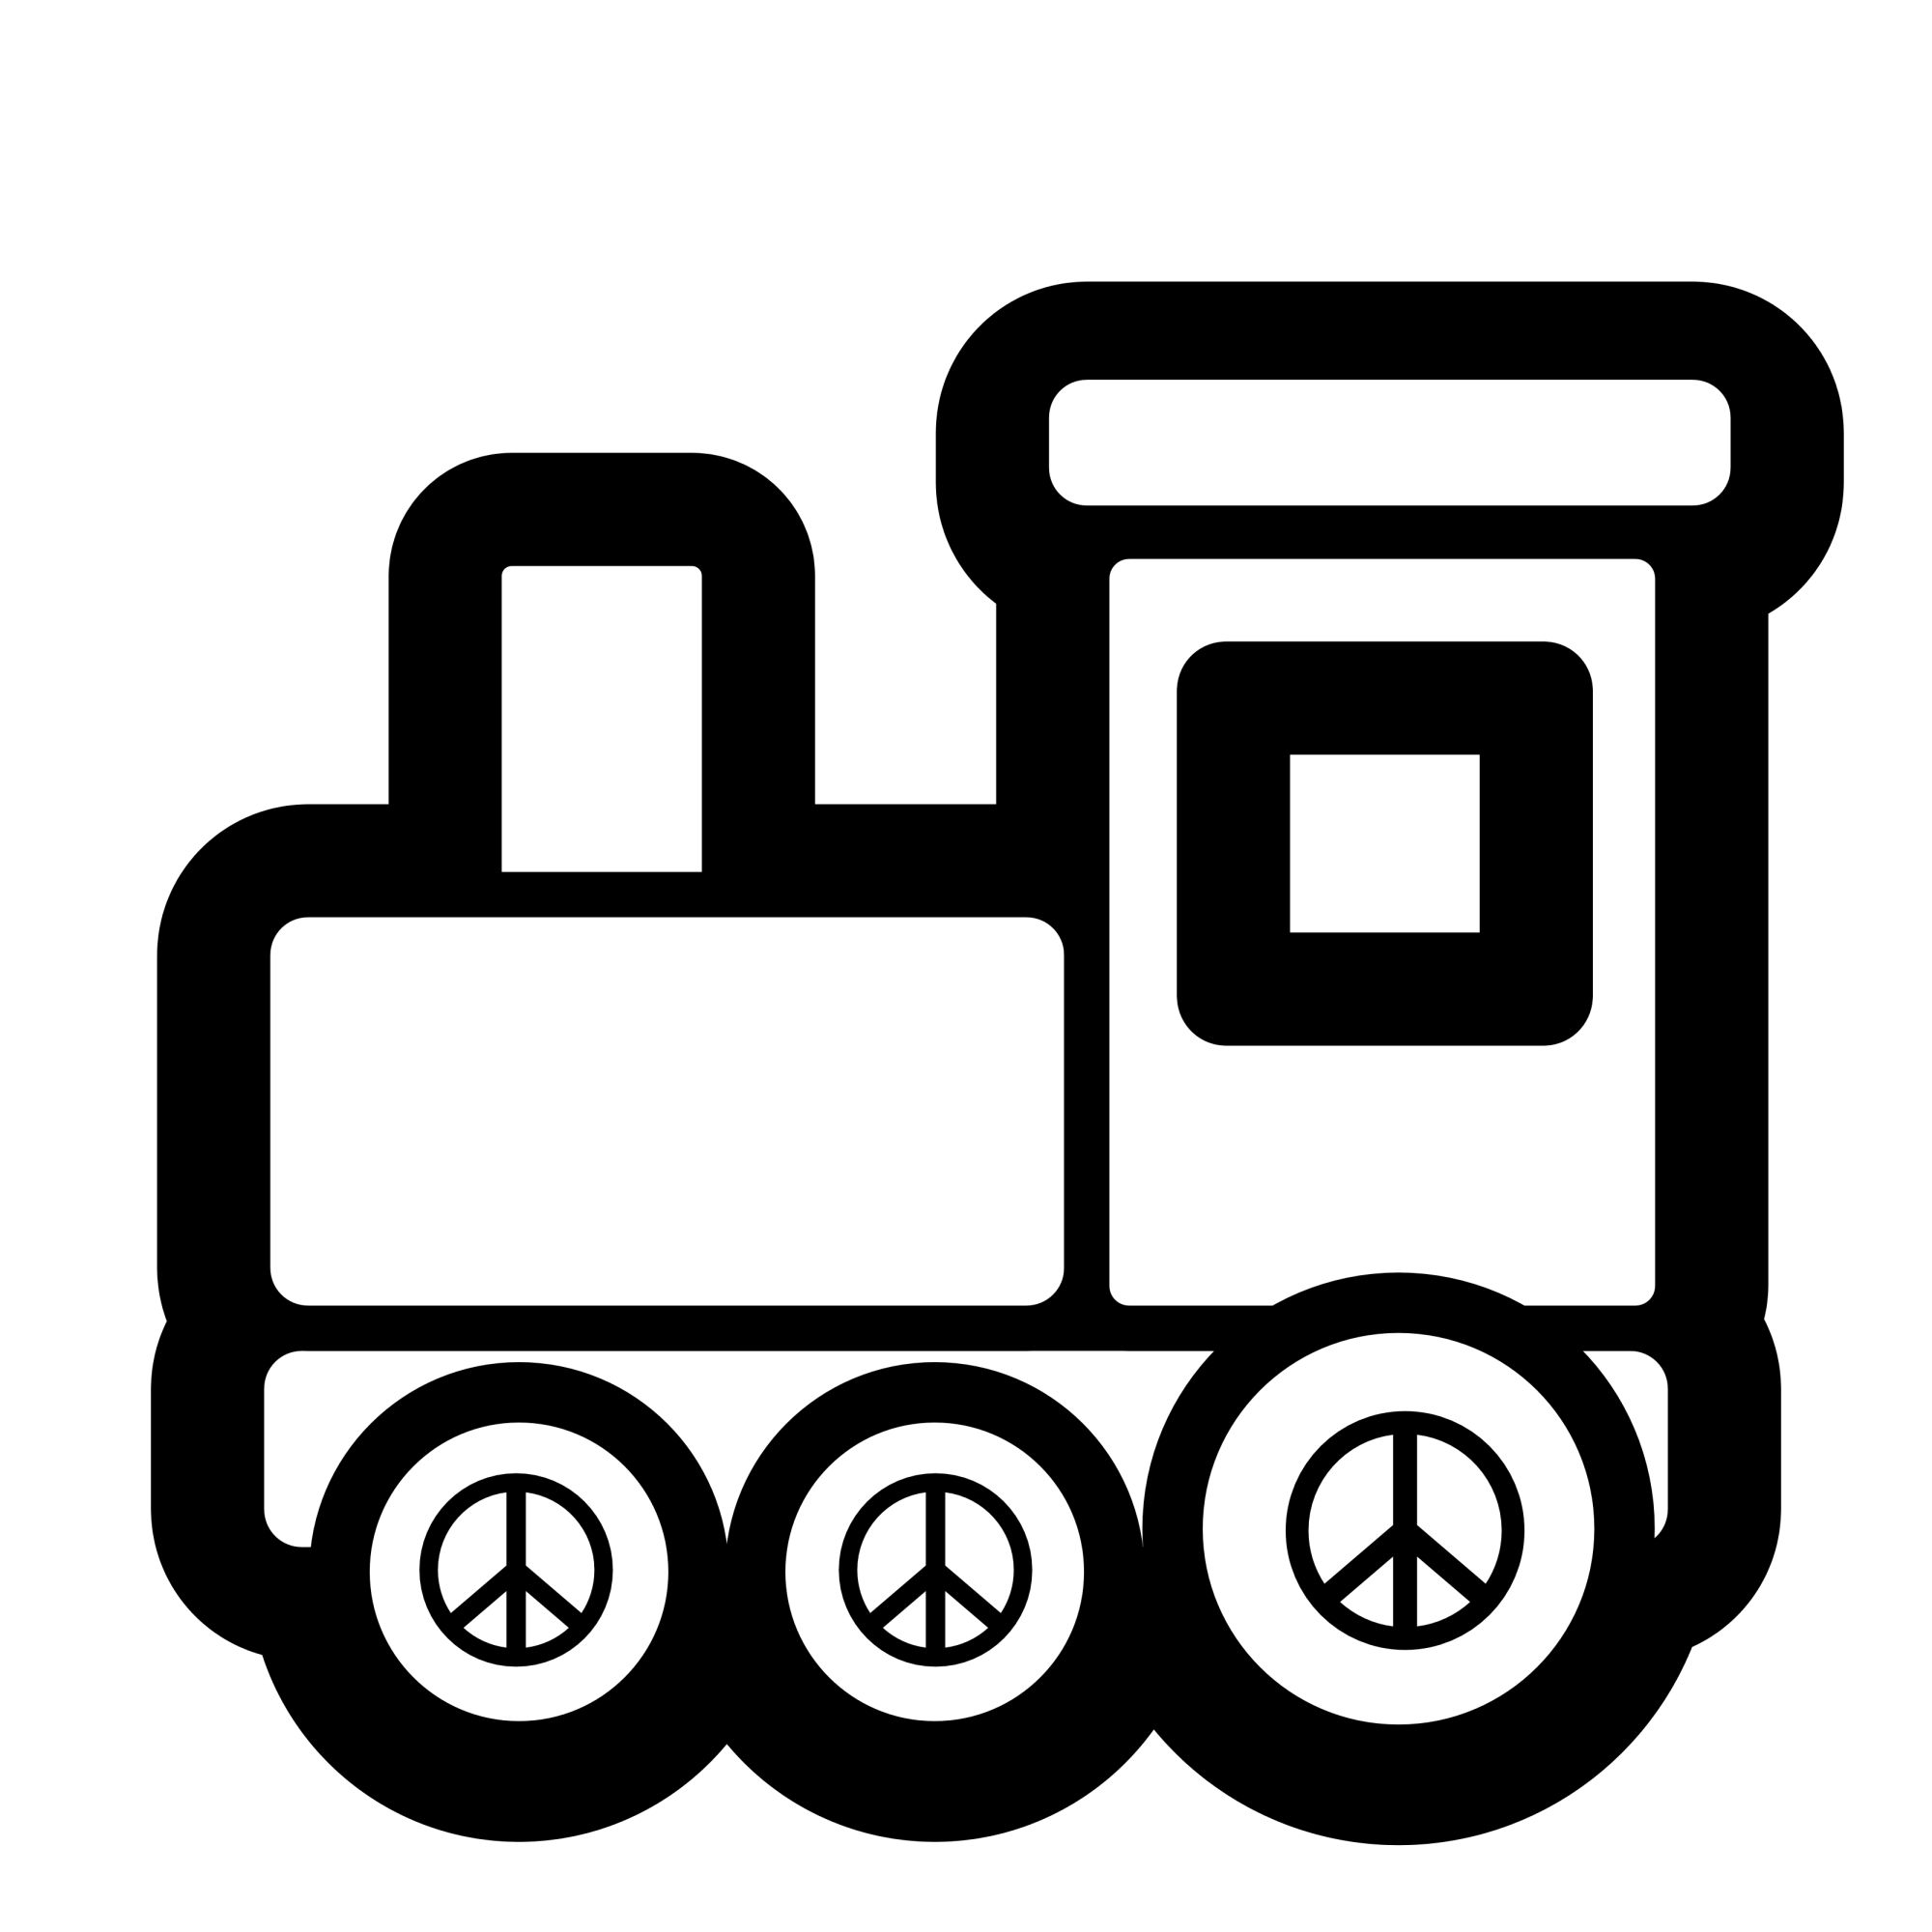 hight resolution of train clipart black and white